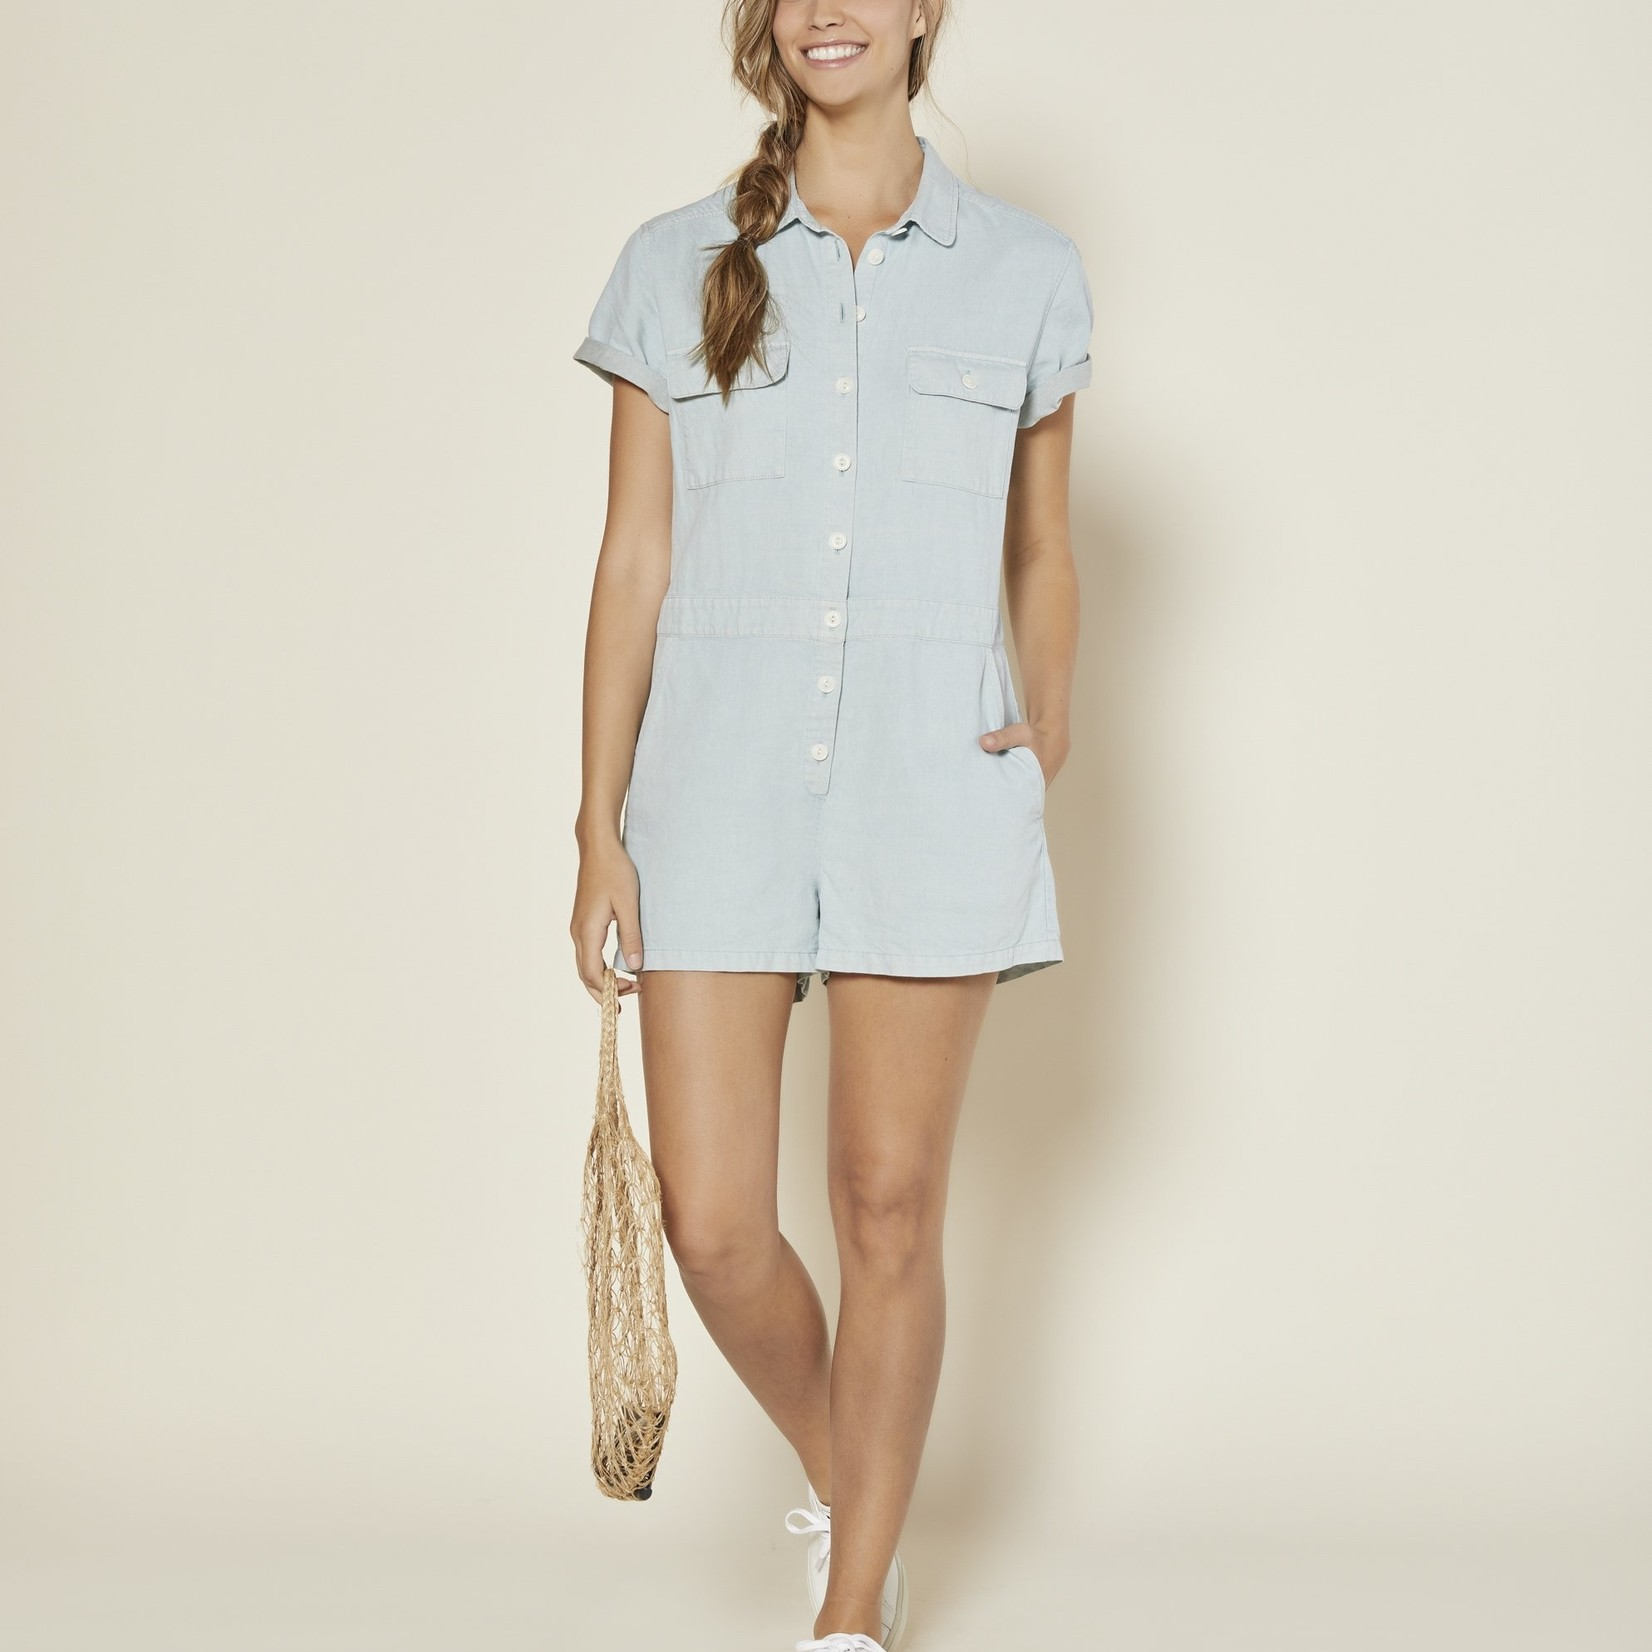 Outerknown Outerknown Sea Suit Shortall Romper